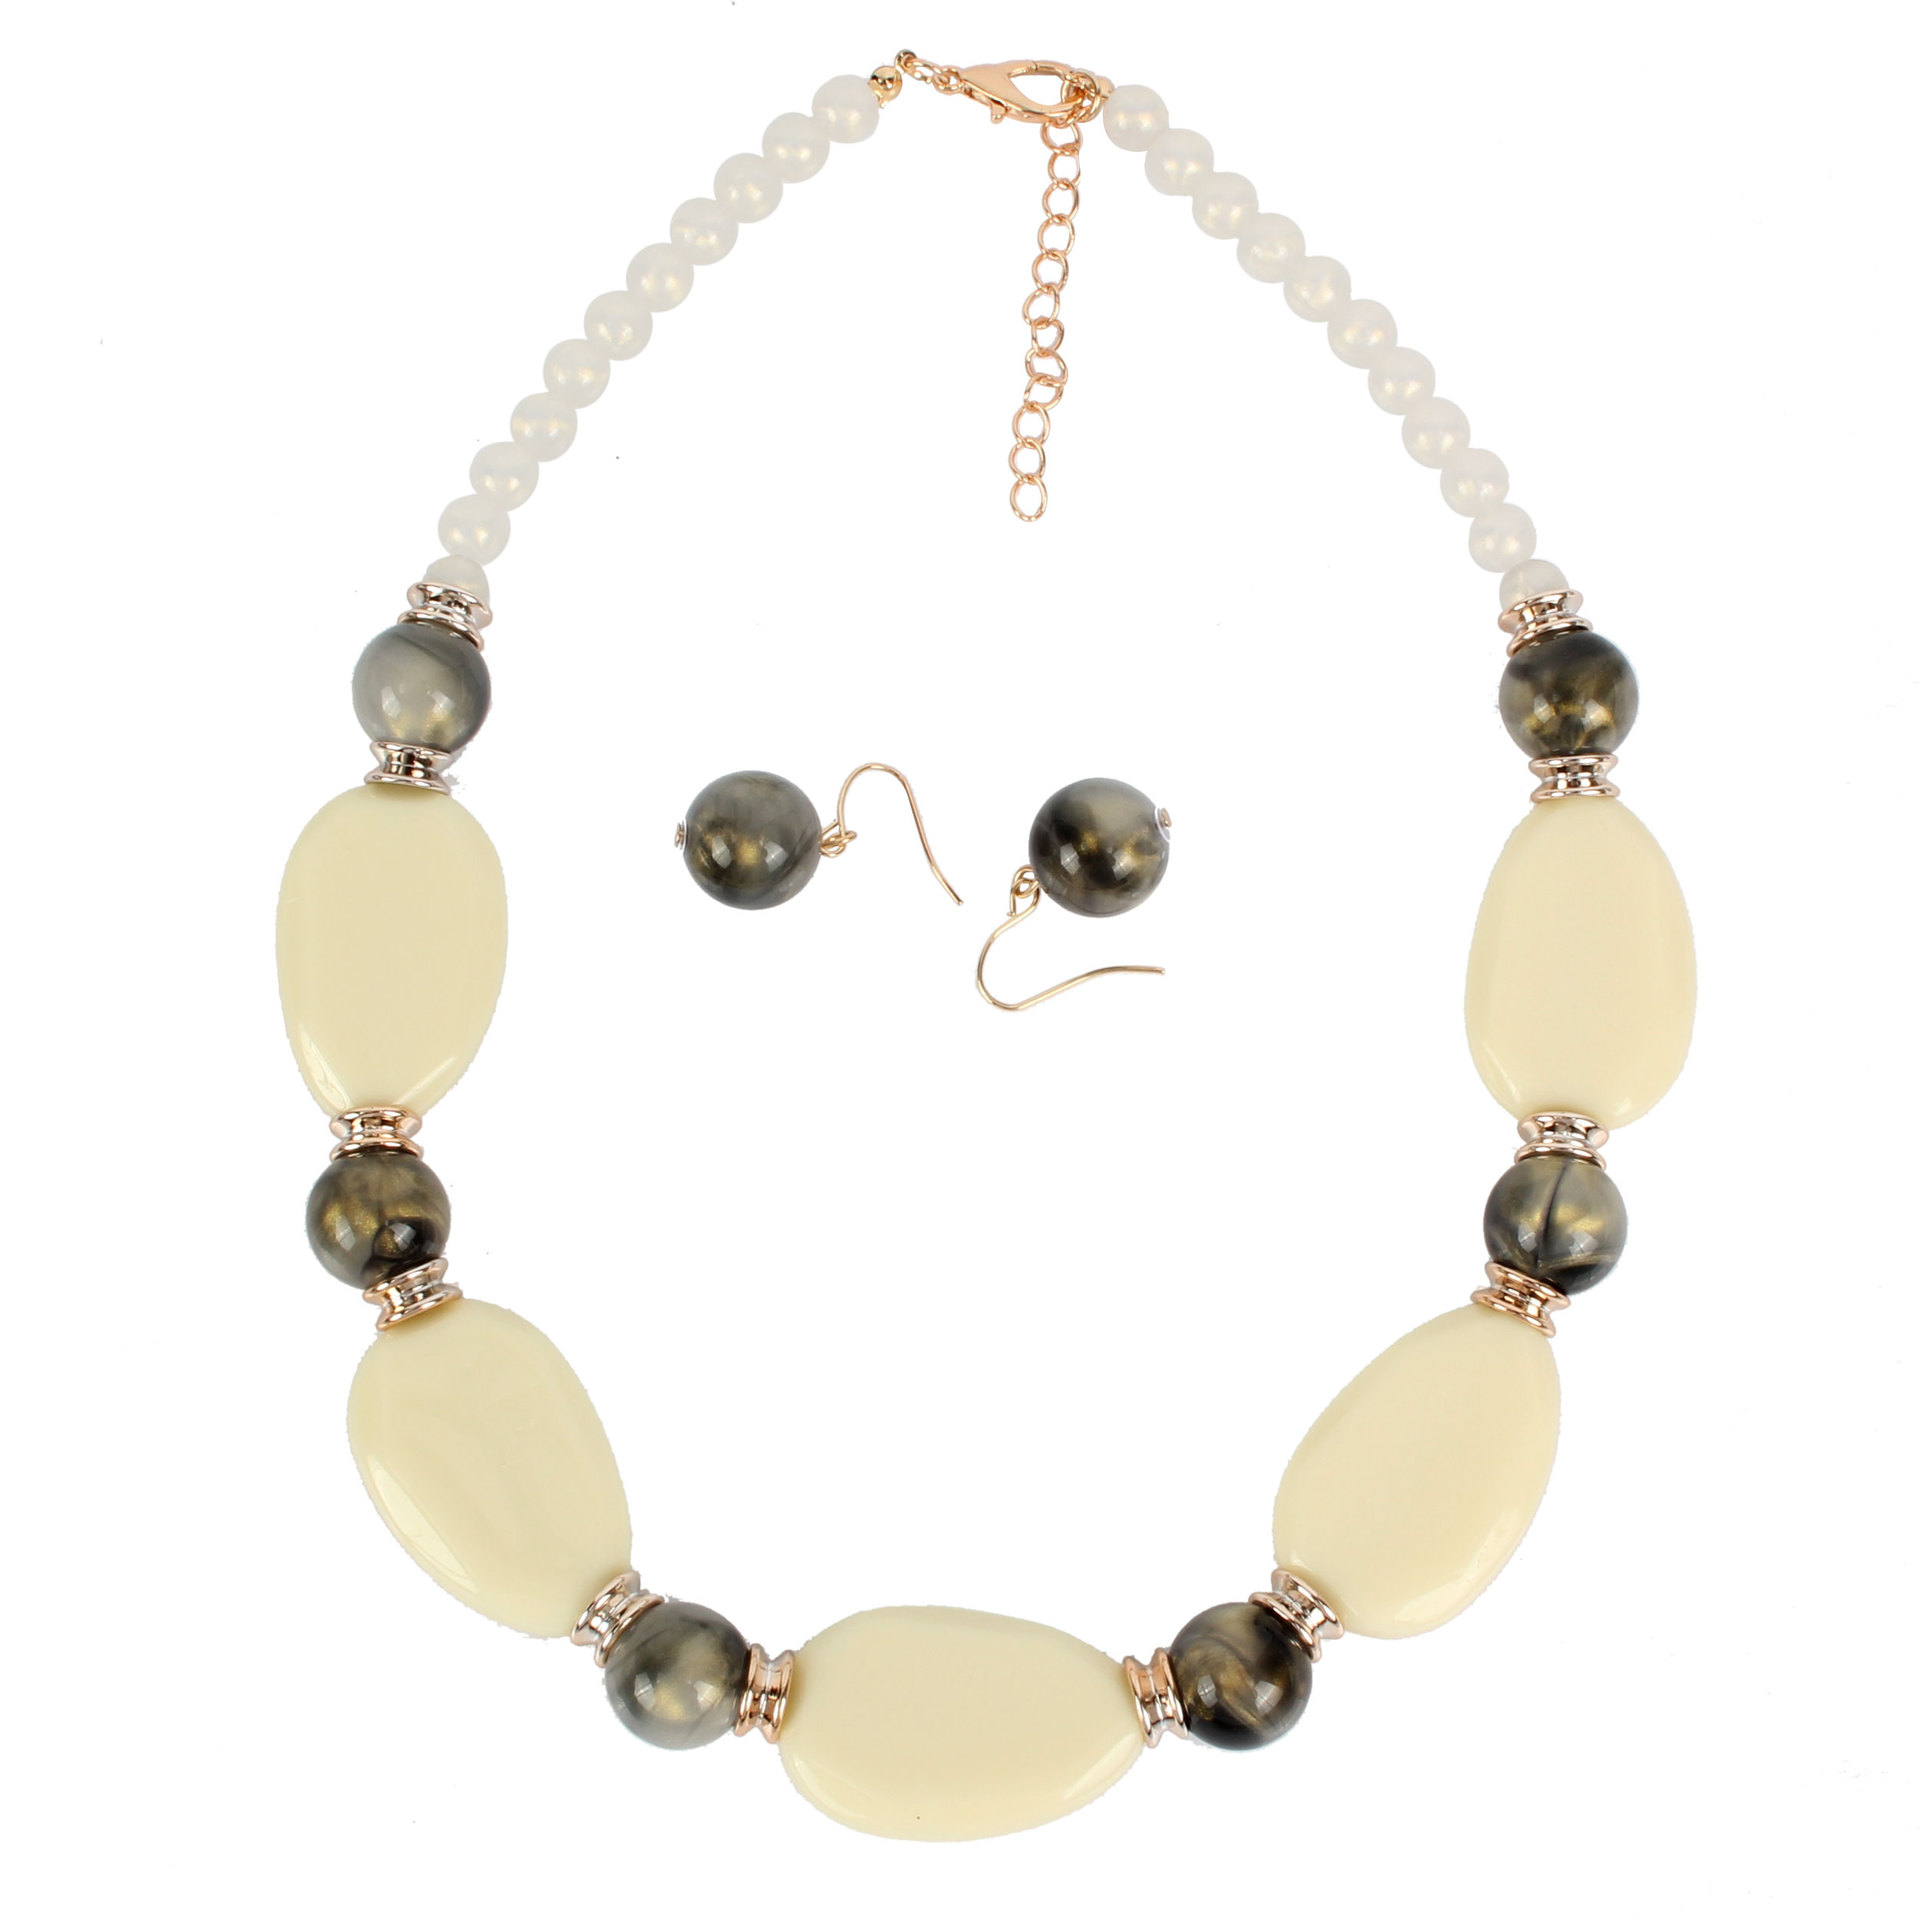 Womens Beads Plastic  Resin Necklaces CT190505120180